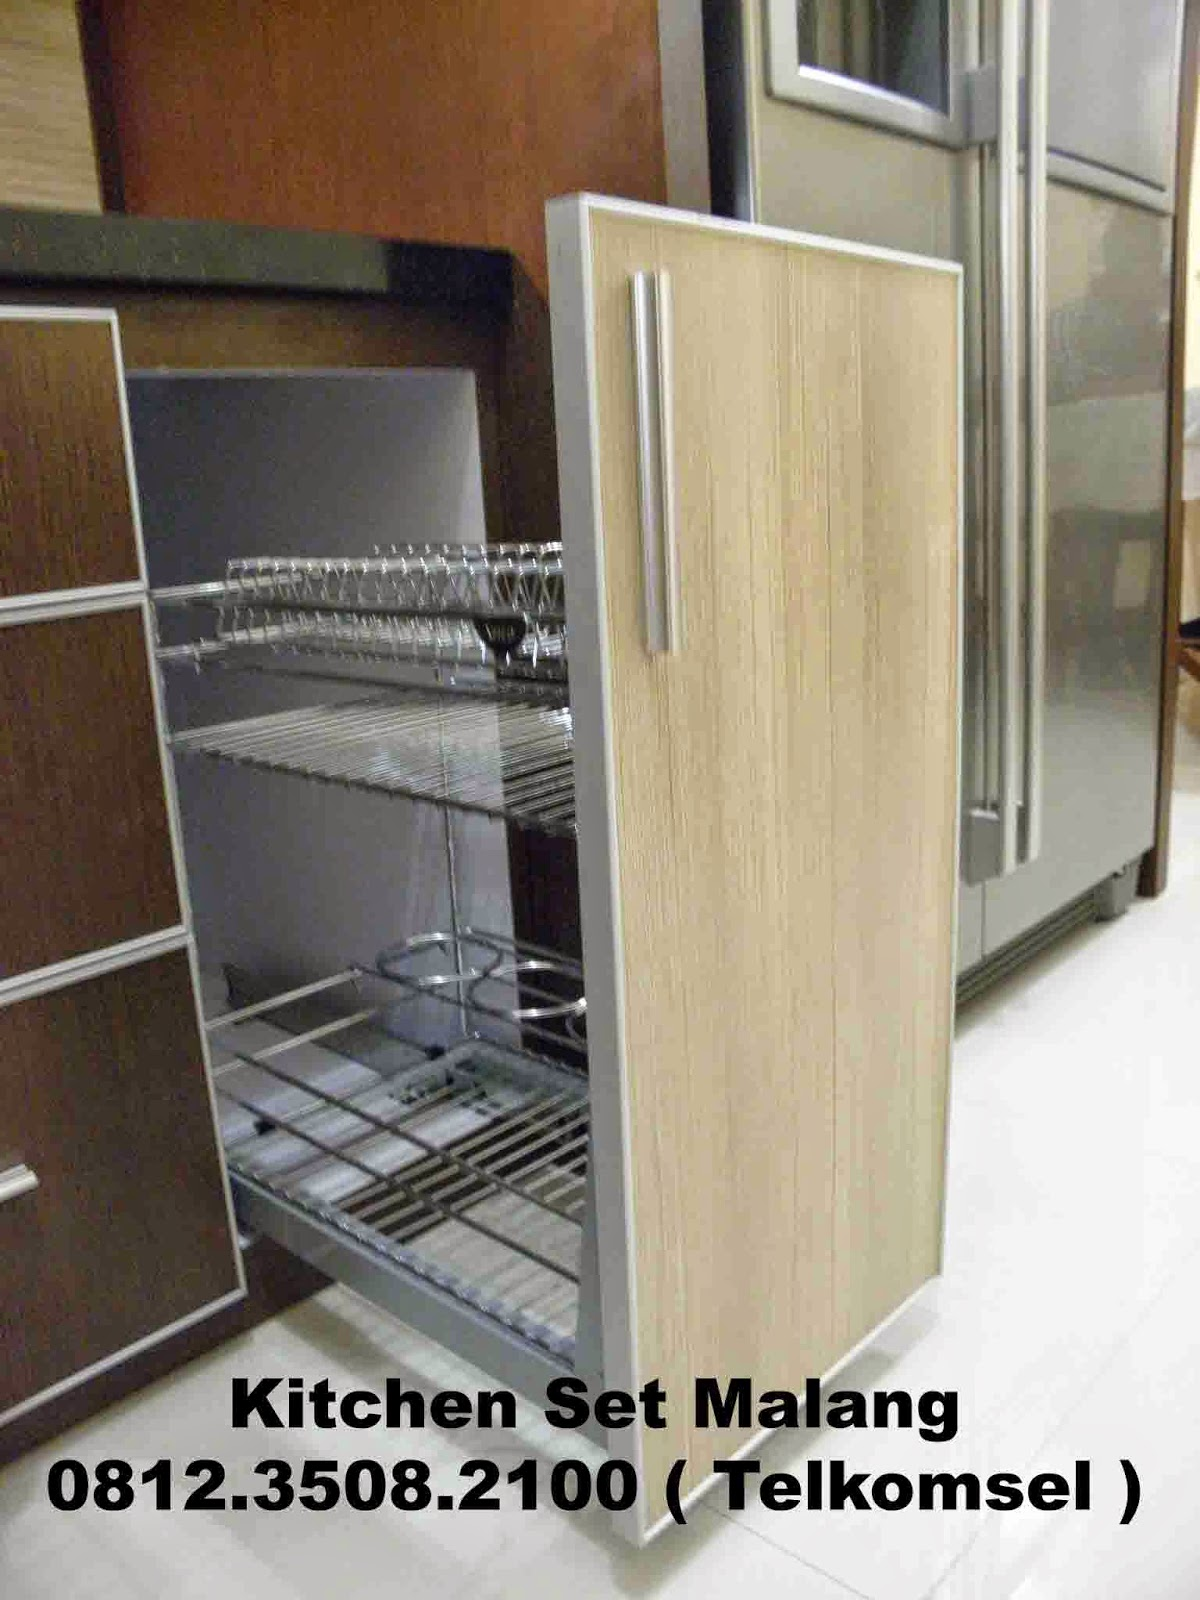 Kitchen set malang murah kitchen set di malang jasa for Ukuran rak piring kitchen set